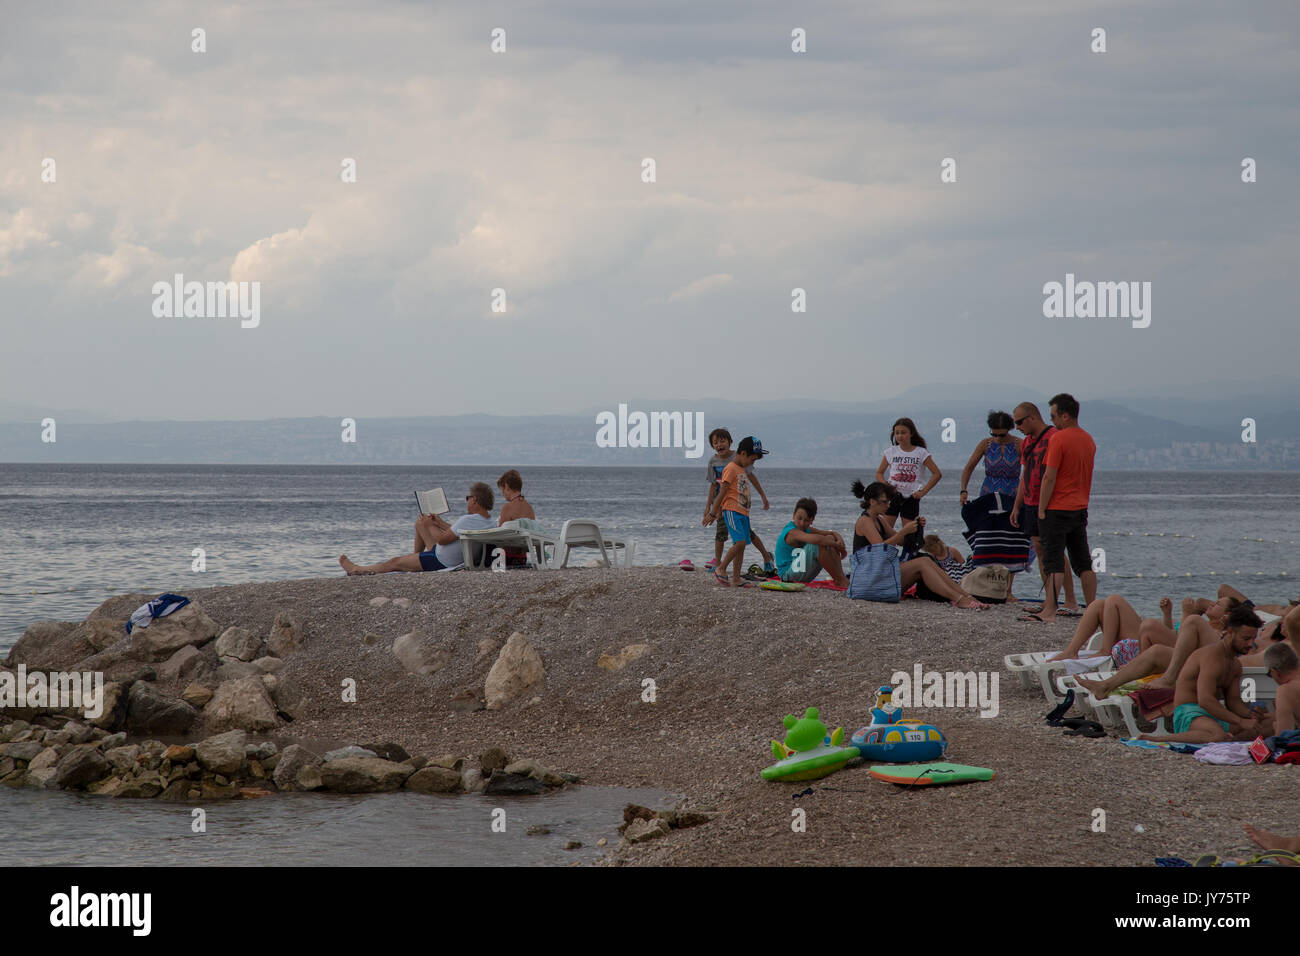 People are seen relaxing on a beach on the island of Krk, Croatia on 24 July, 2017. - Stock Image